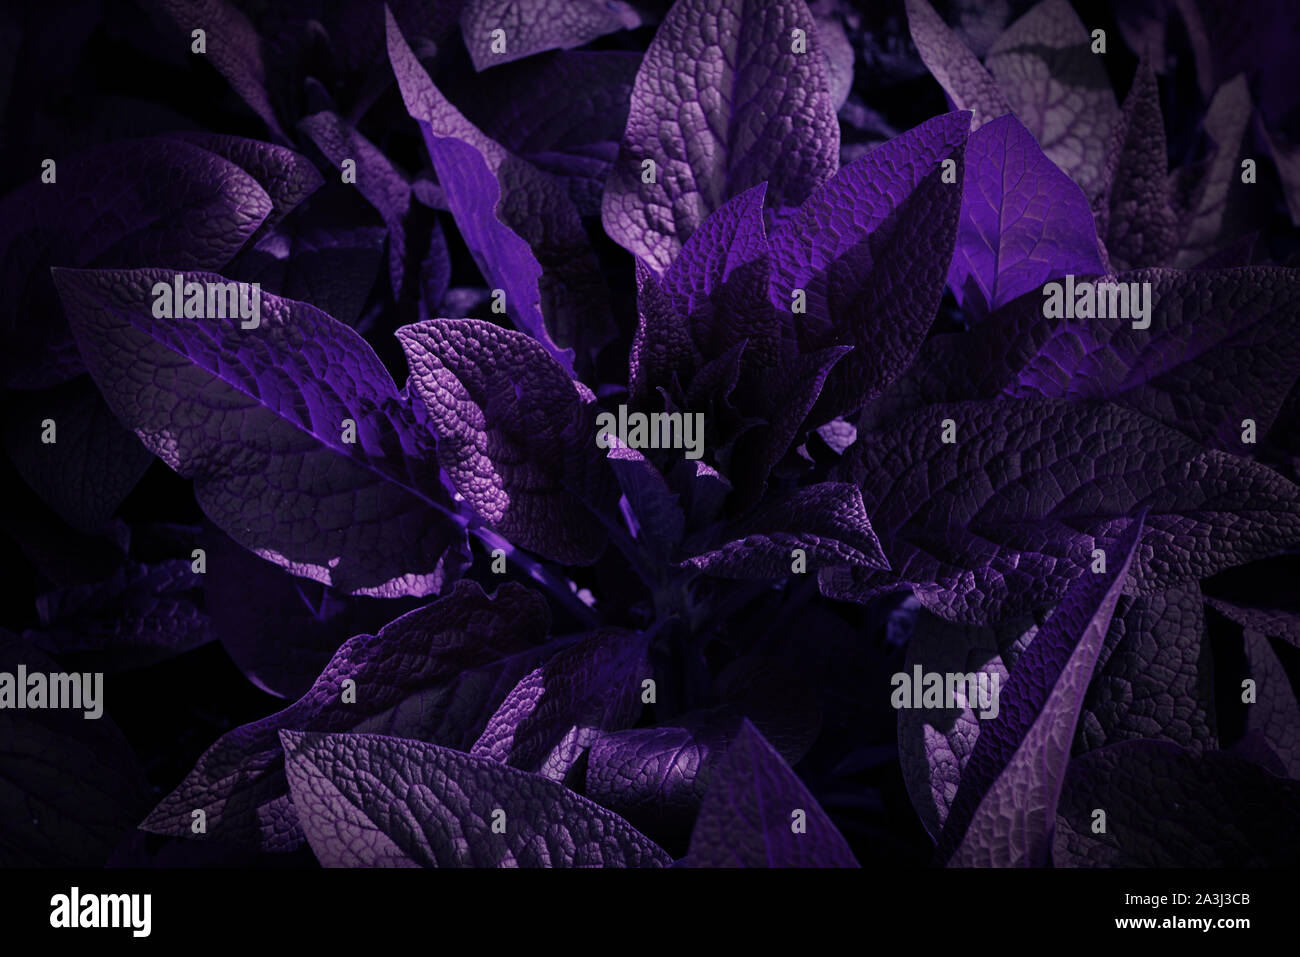 Plant With Purple And Black Leaves Leaves Pattern Background Natural Background And Wallpaper Stock Photo Alamy